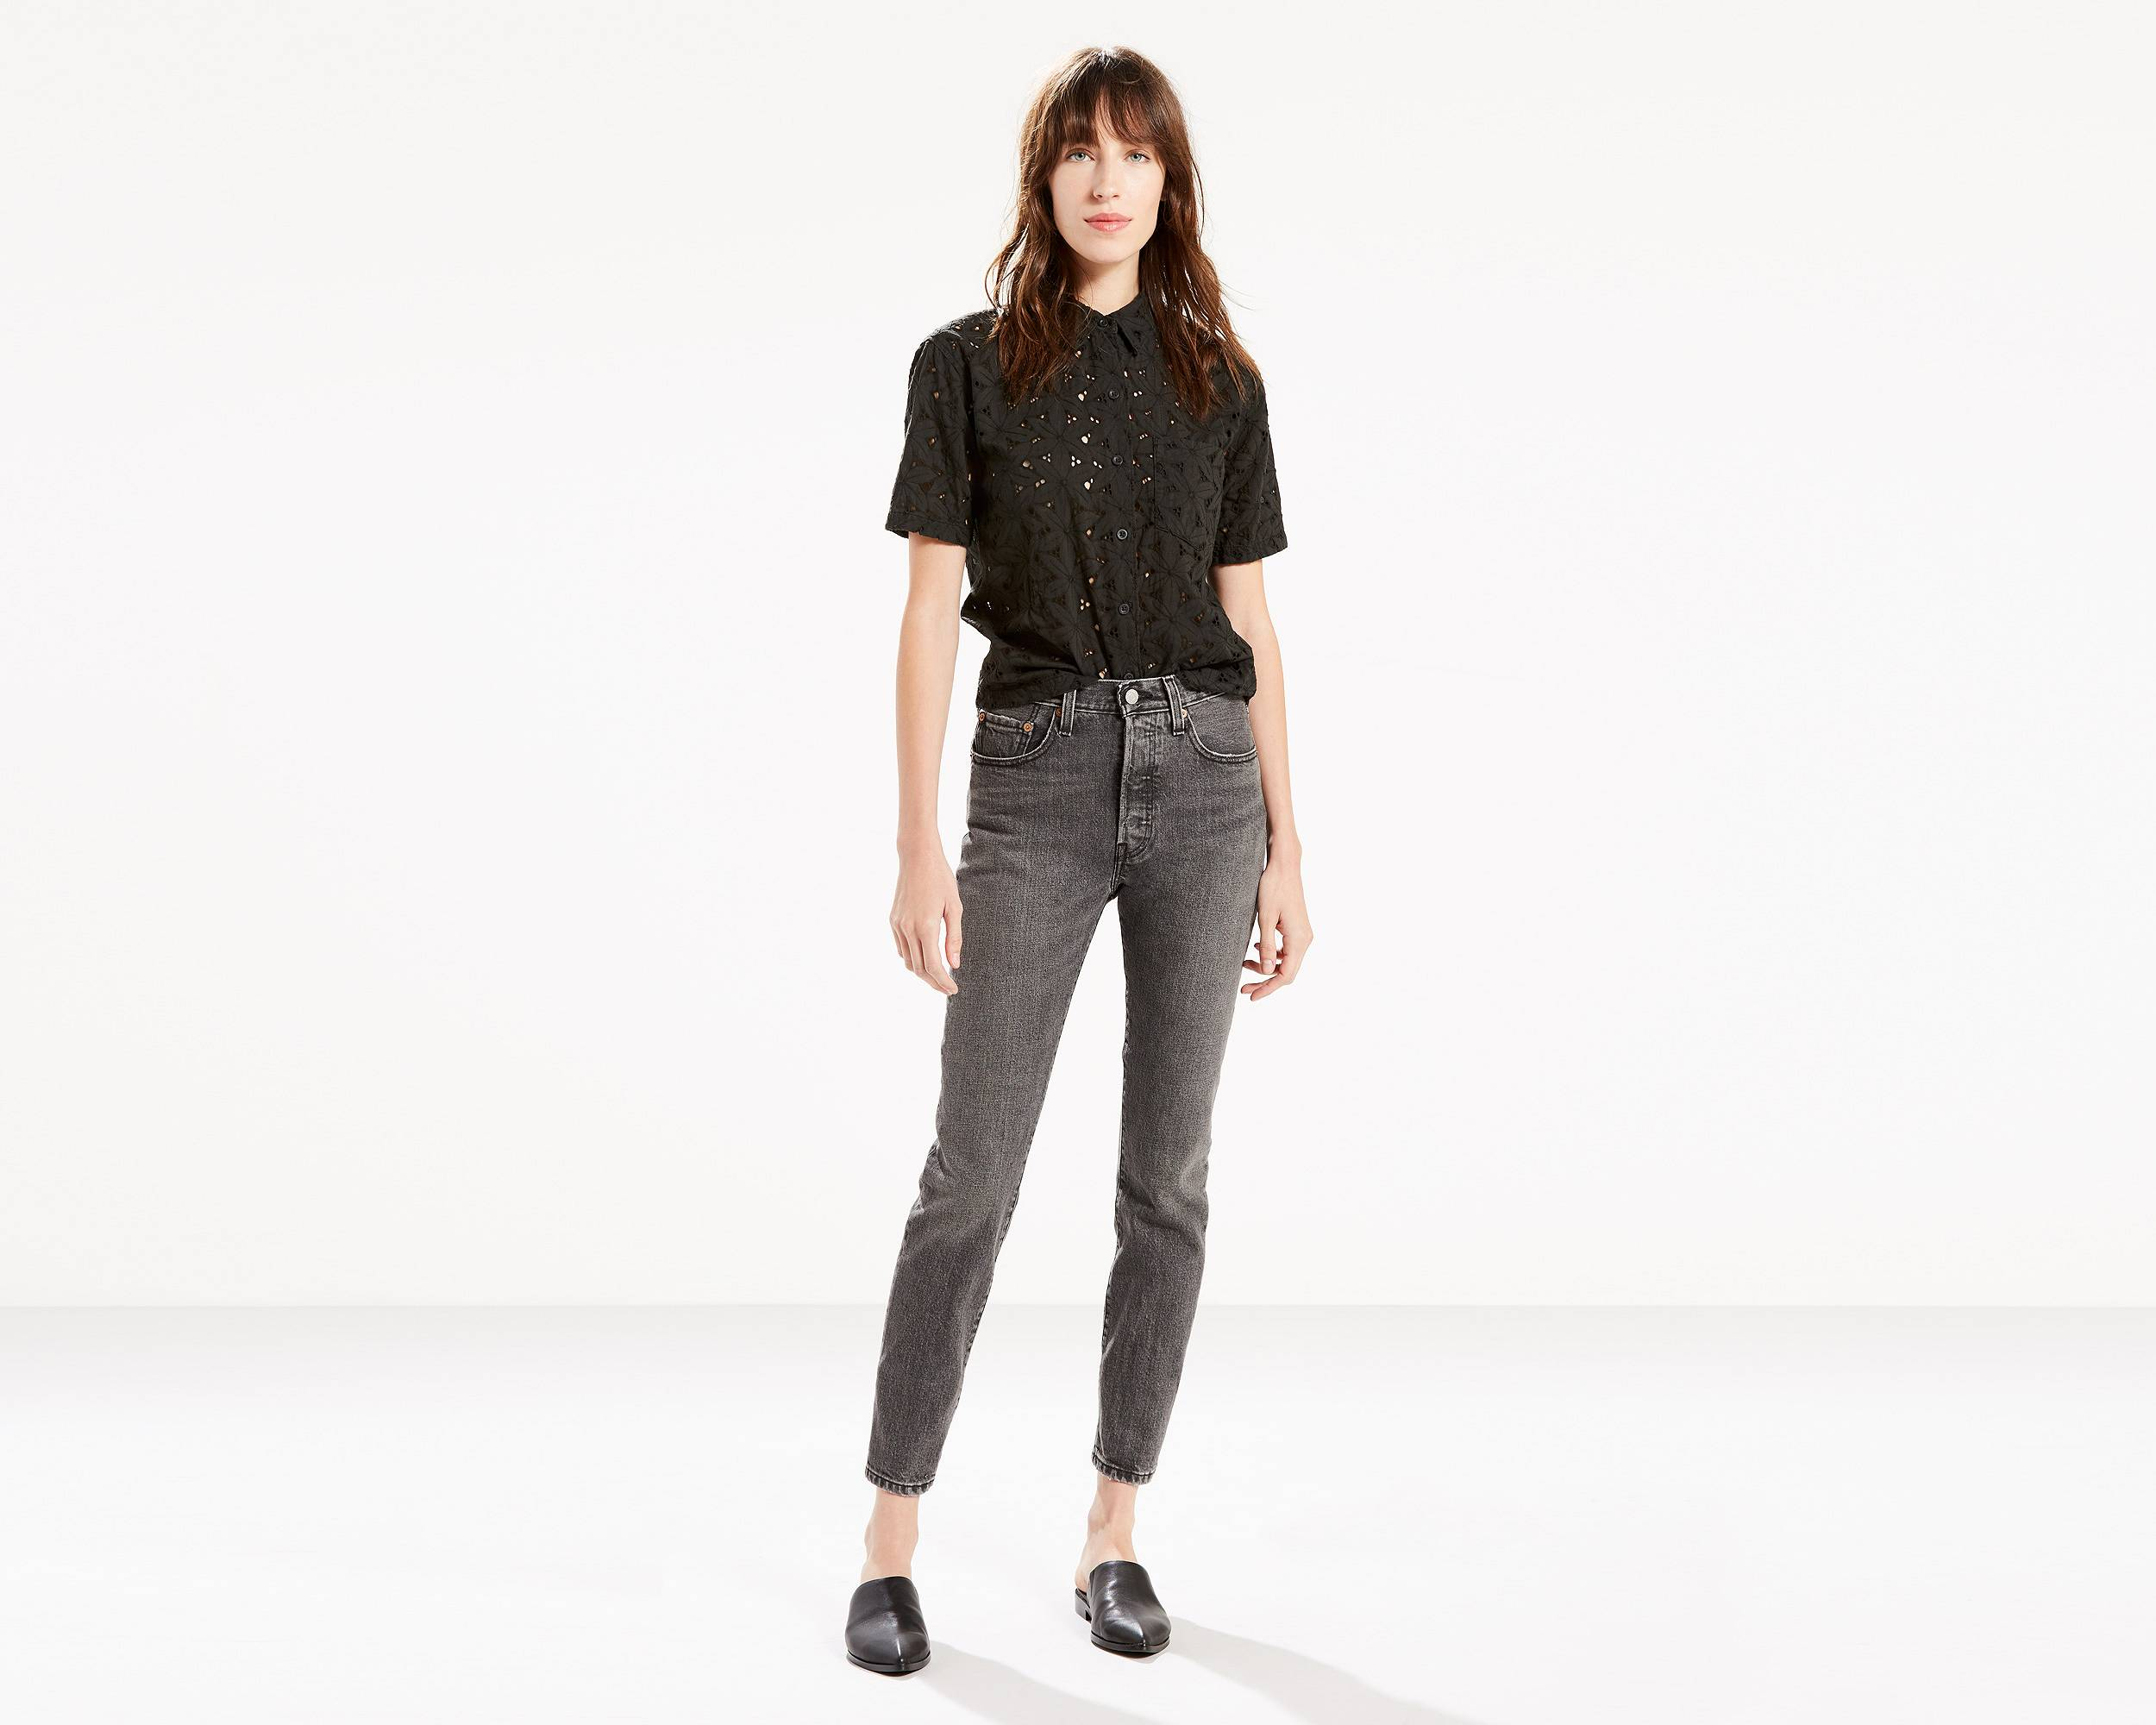 Black High Waisted Jeans | Skinny Jeans for Women | Levi's®